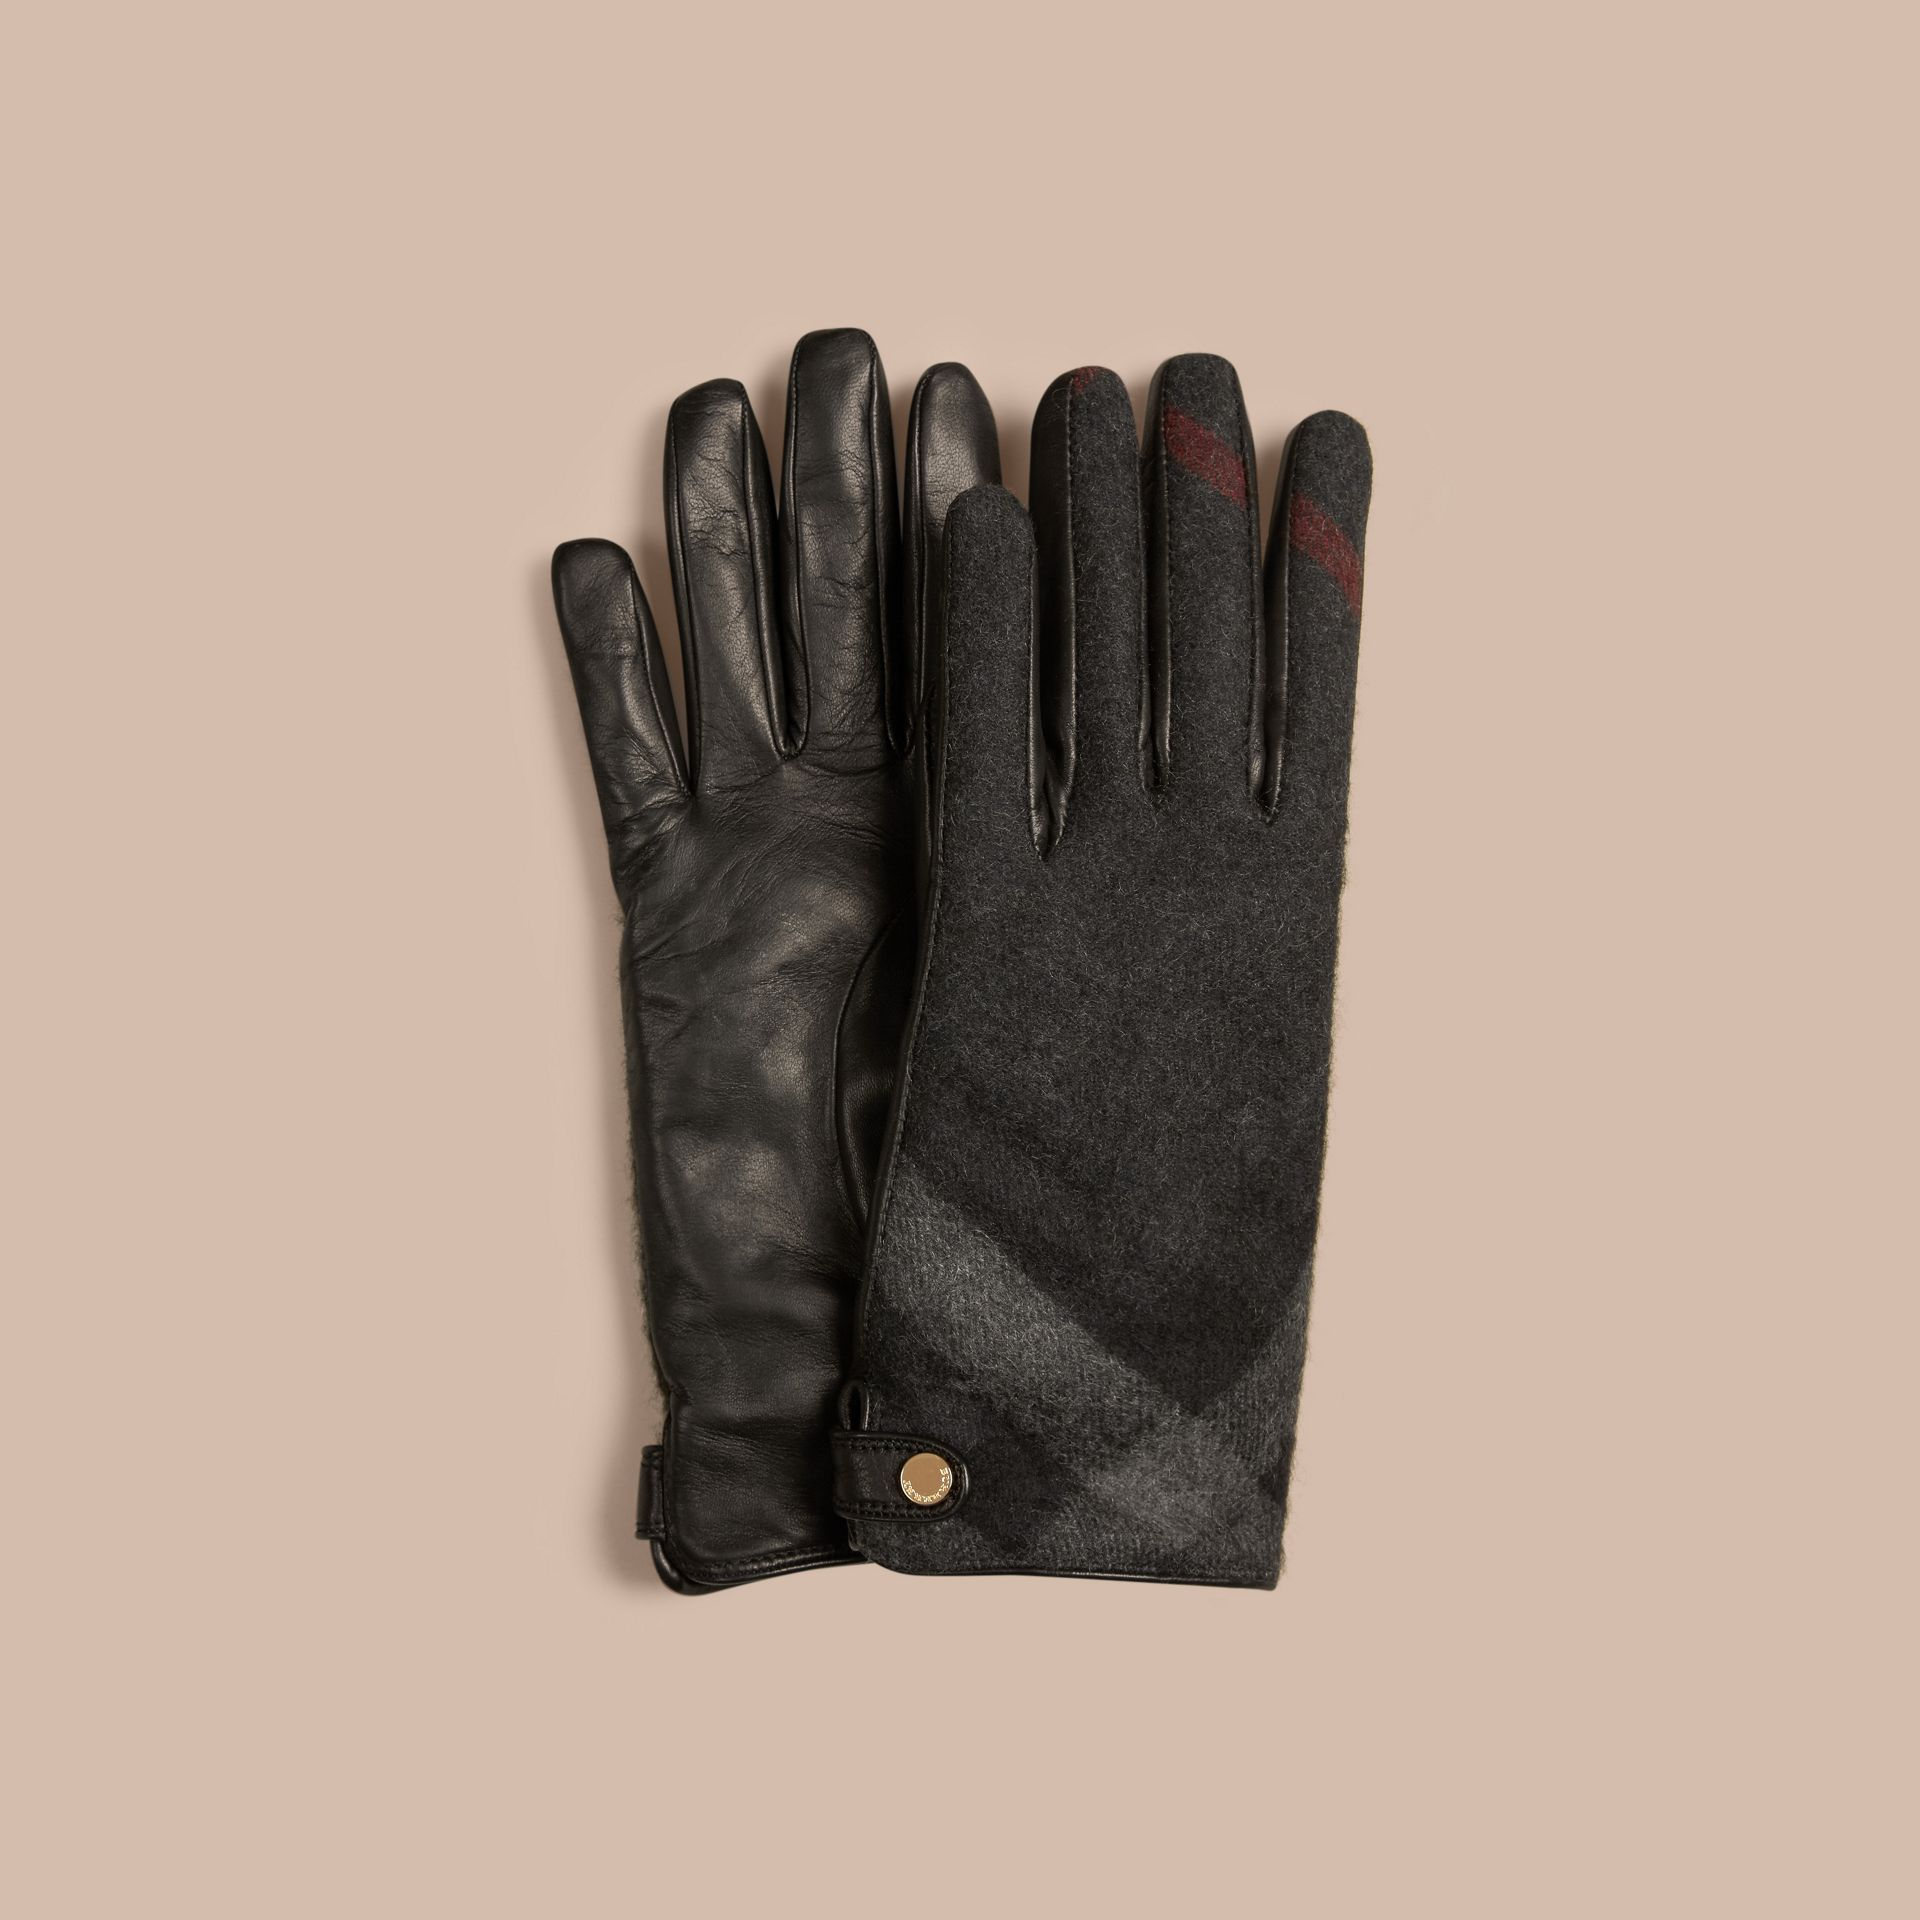 Leather and Check Cashmere Gloves in Charcoal - Women | Burberry Hong Kong - gallery image 1